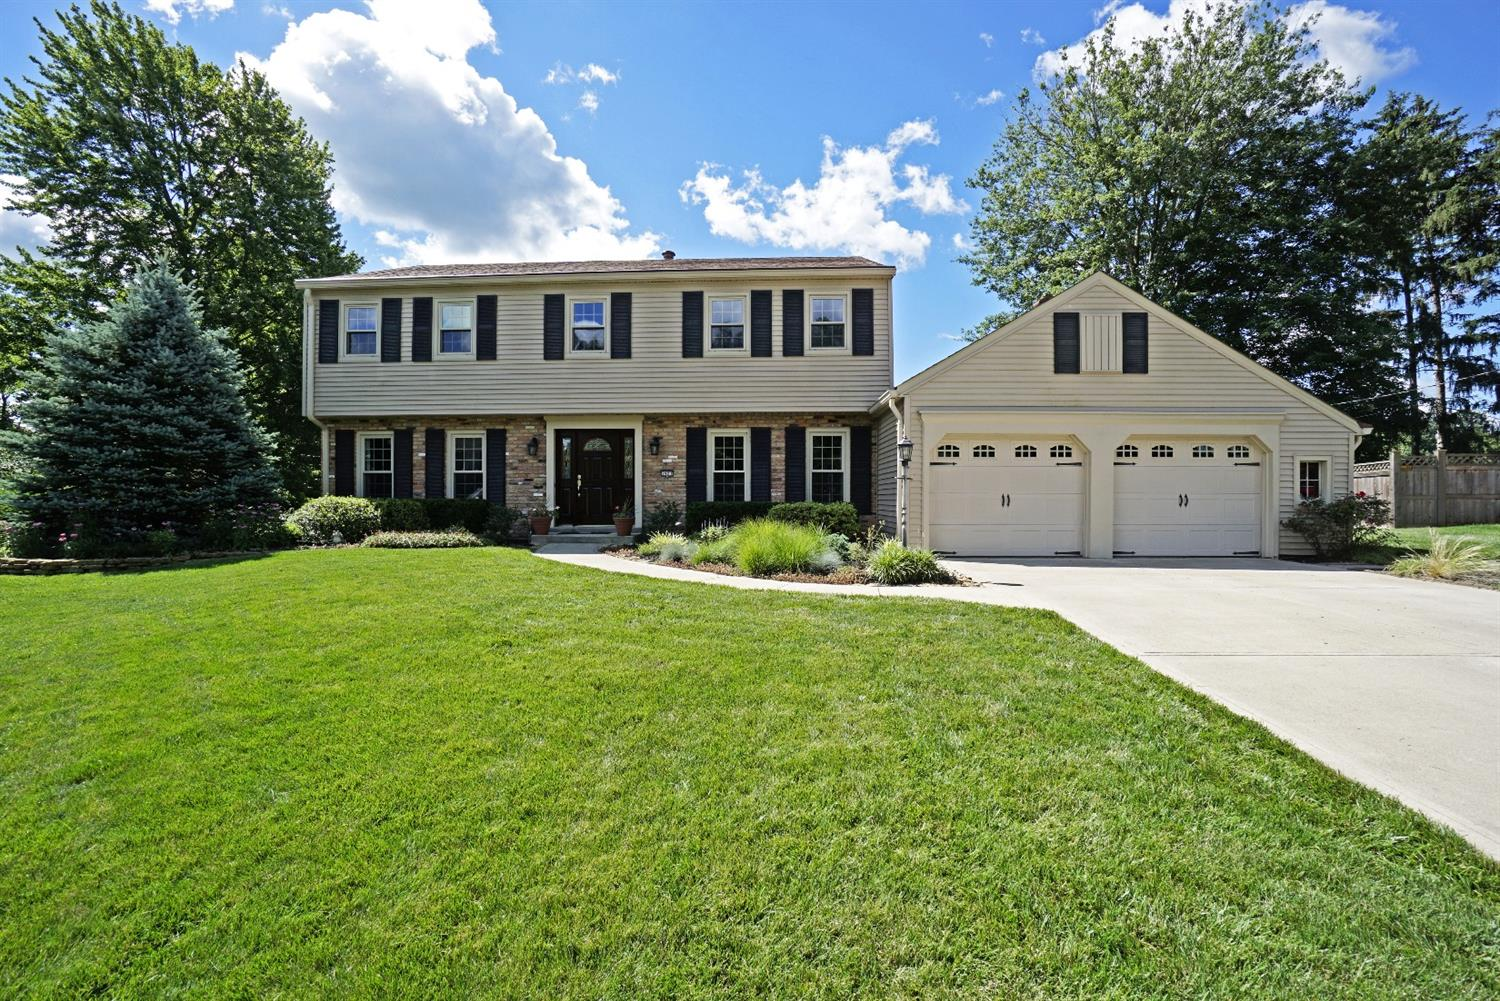 7921 Treeheights Court, Montgomery, OH 45242